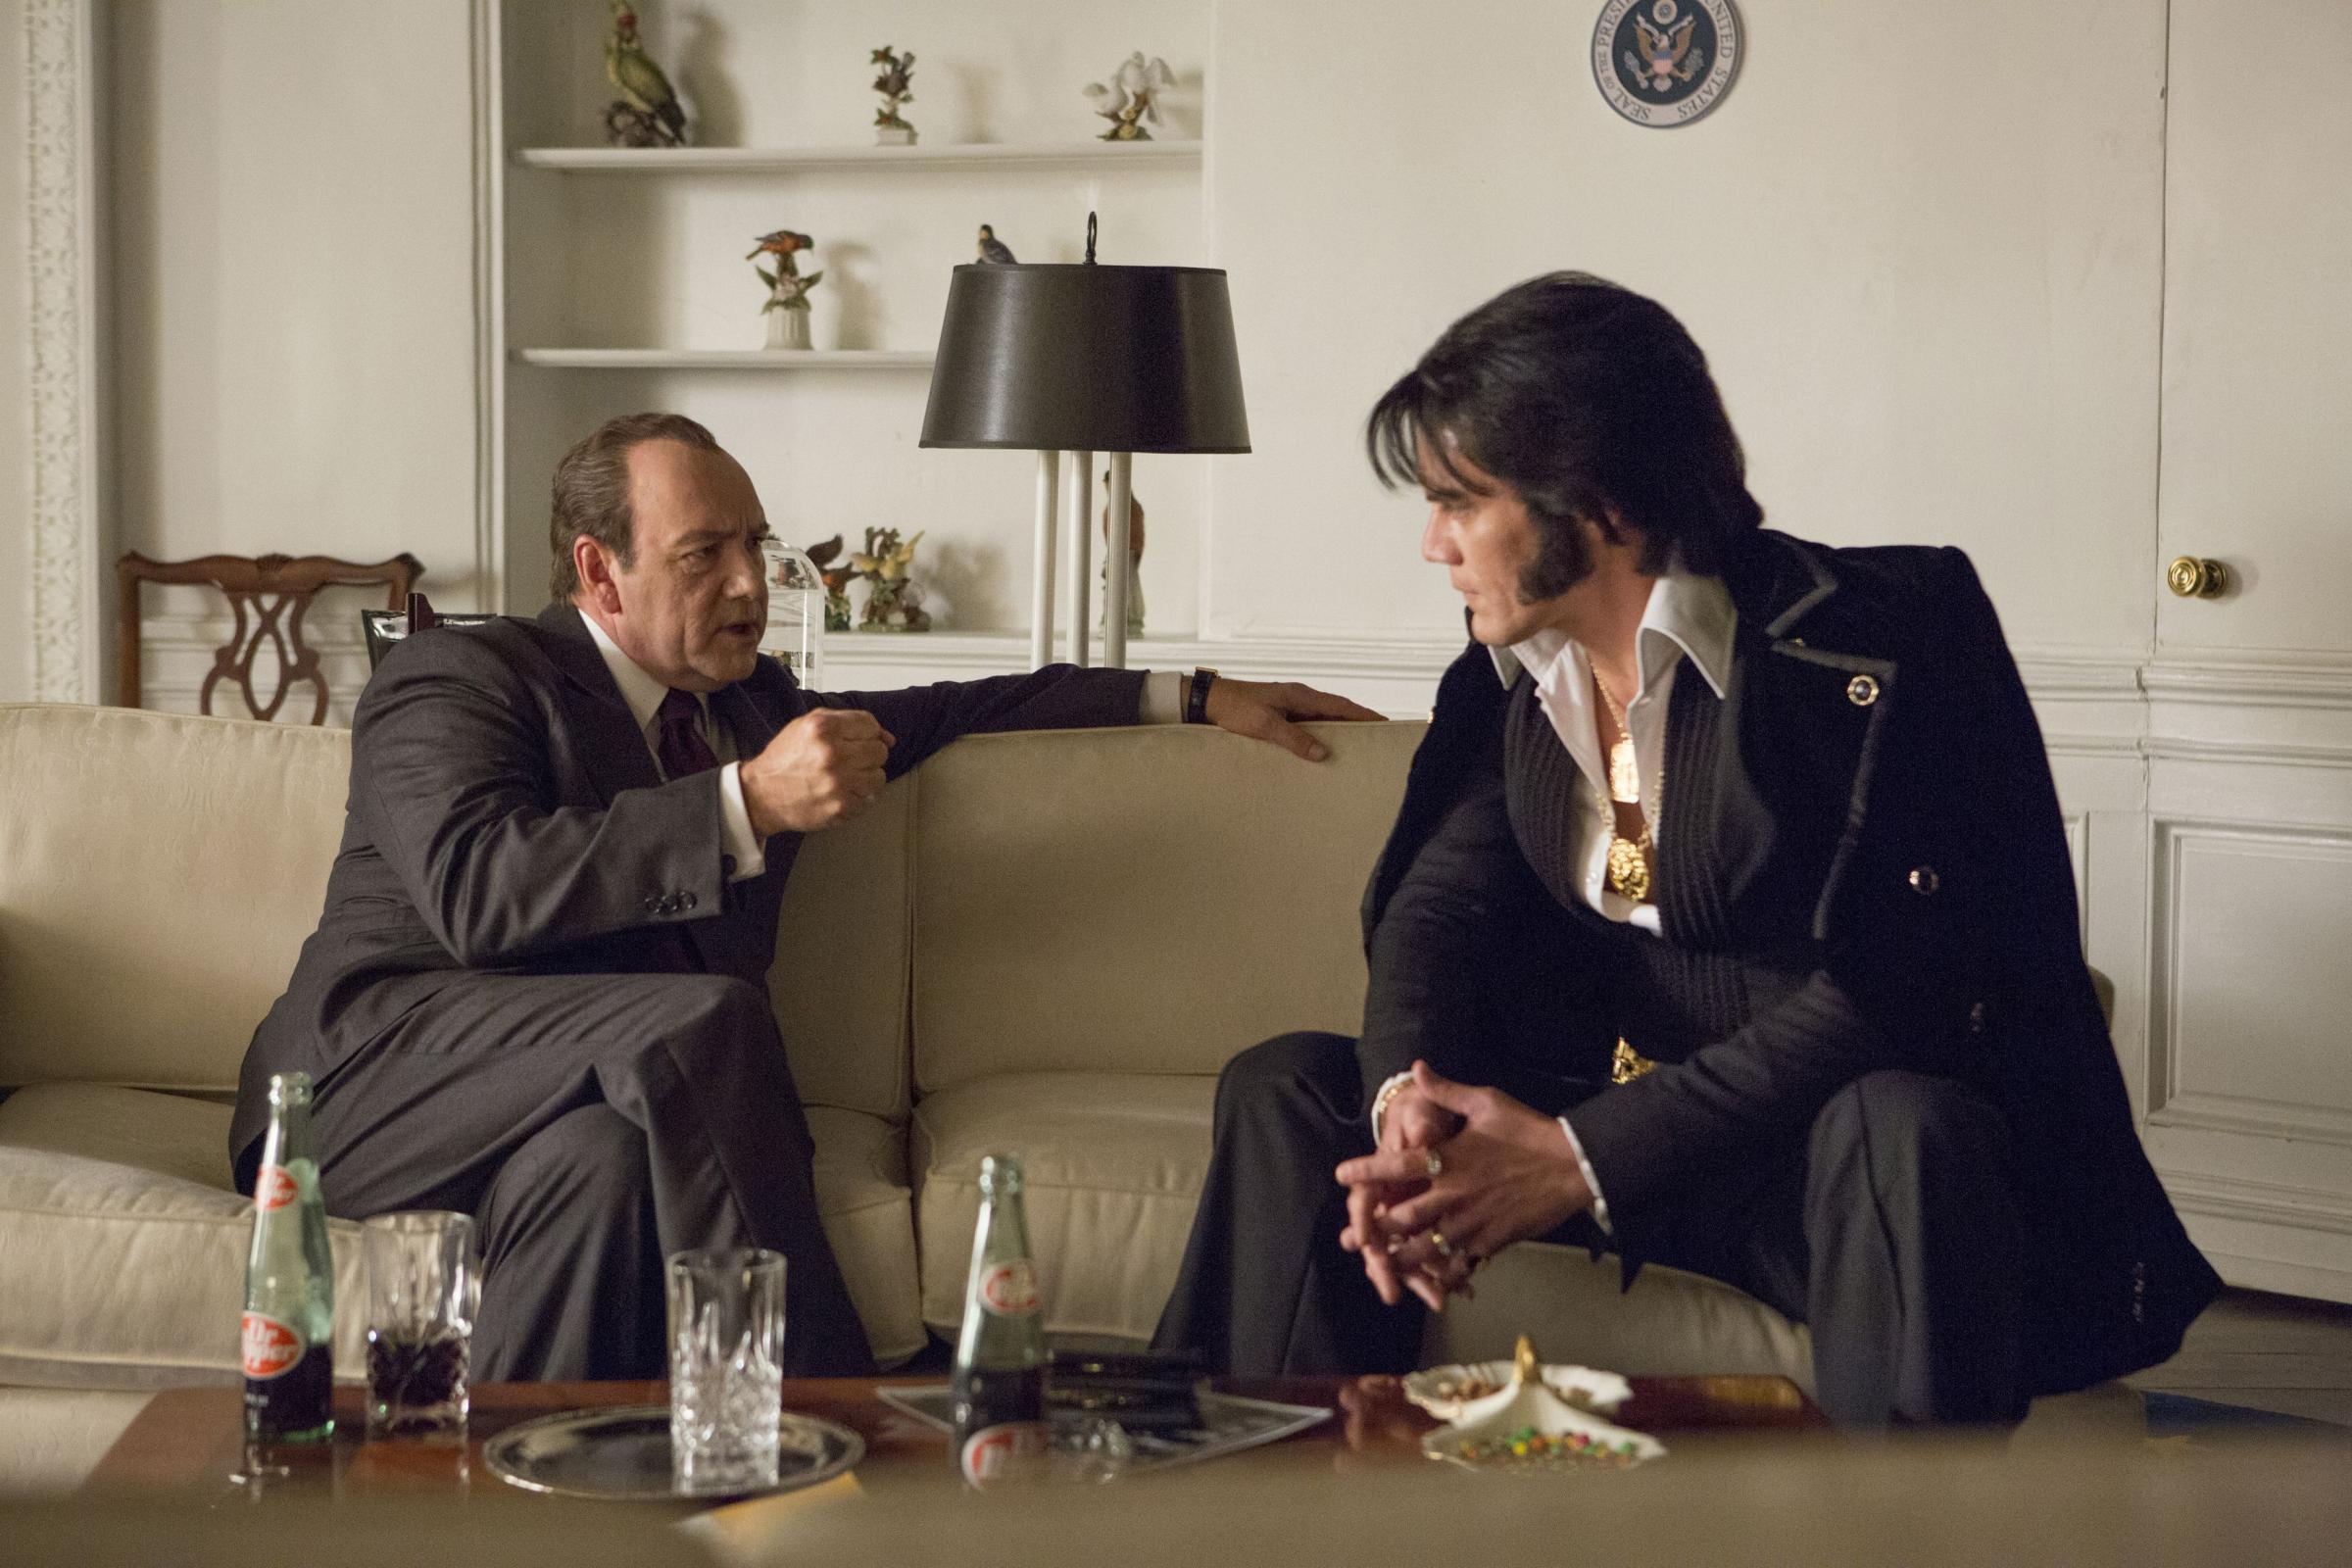 ALL SHOOK UP: Kevin Spacey stars as Richard Nixon with Michael Shannon as Elvis